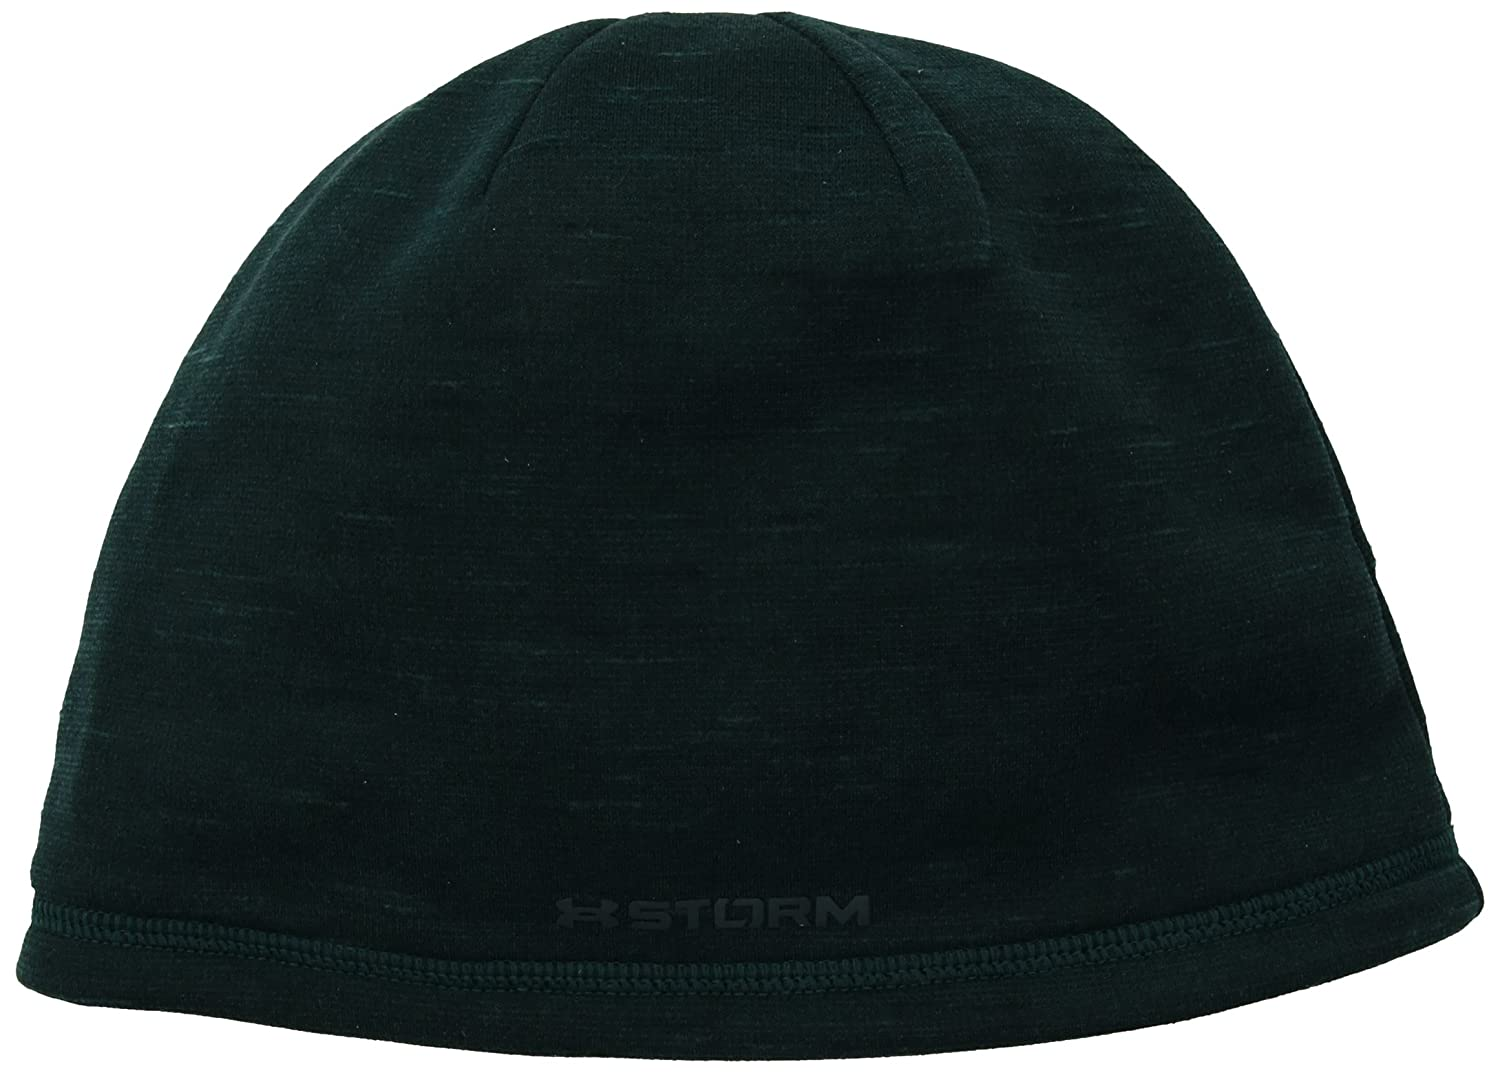 ce0b1bb90fe Amazon.com  Under Armour Men s ColdGear Reactor Elements Beanie ...